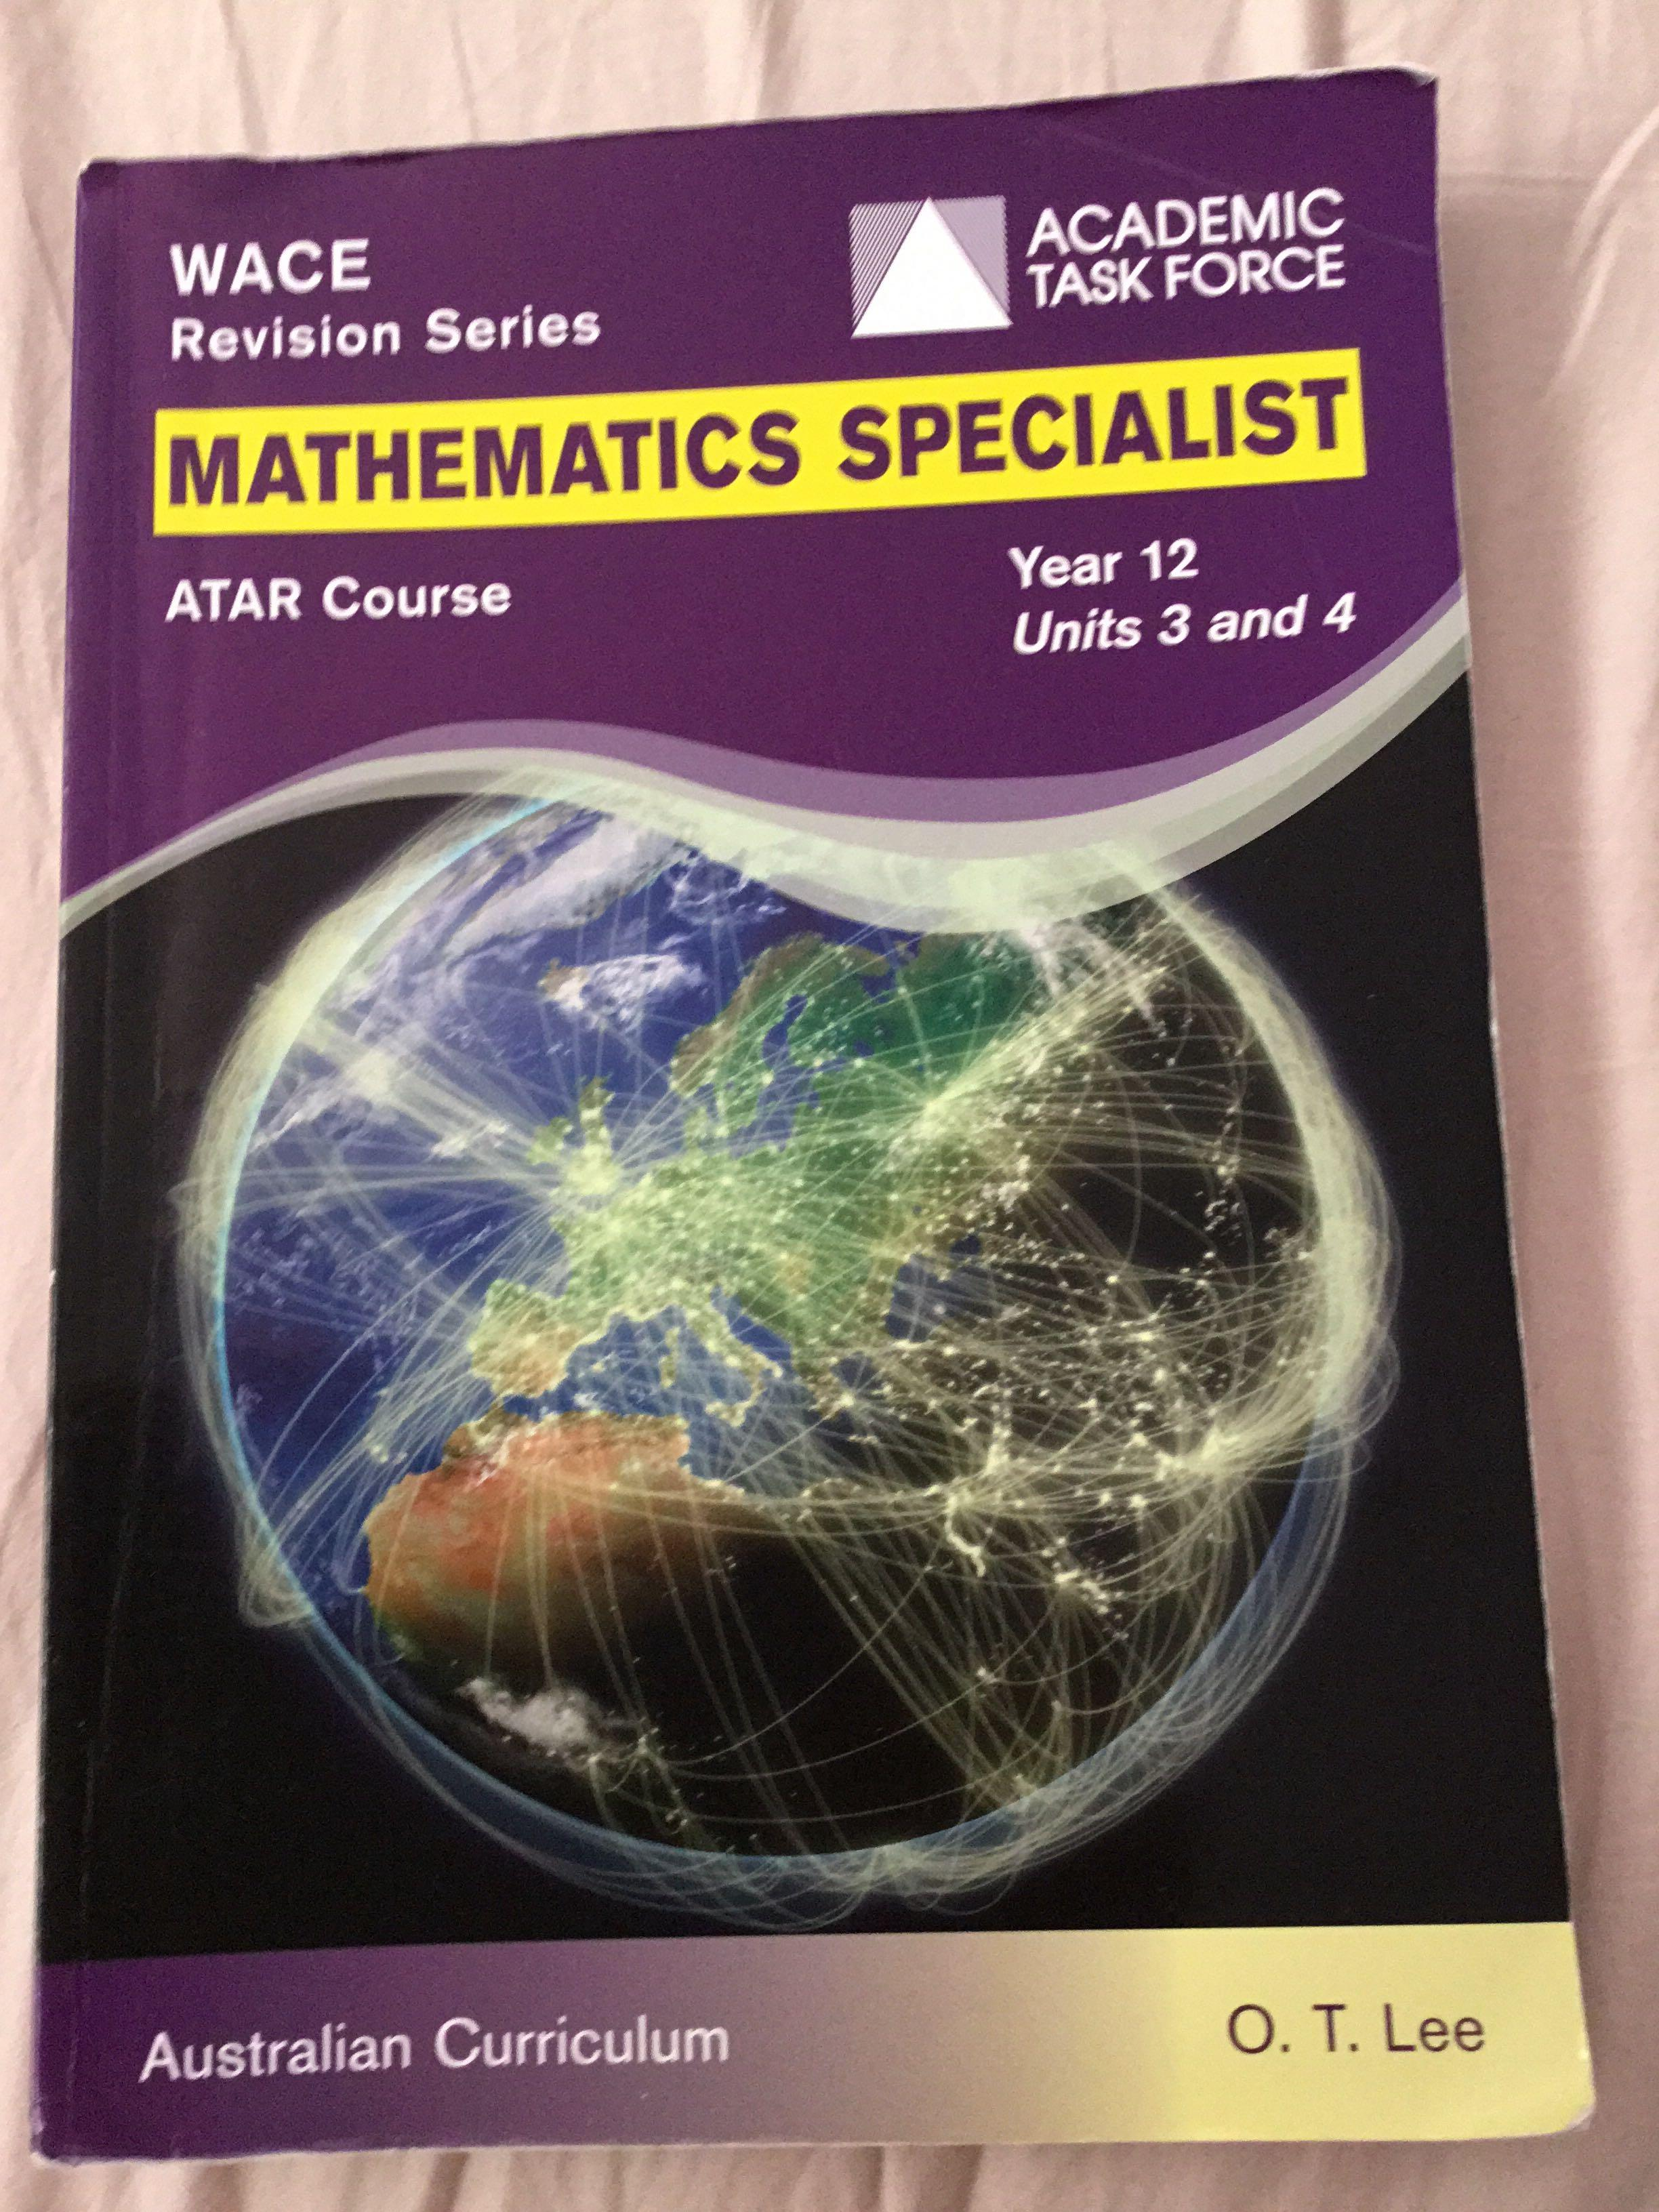 Academic task force wace revision series year 12 maths specialist